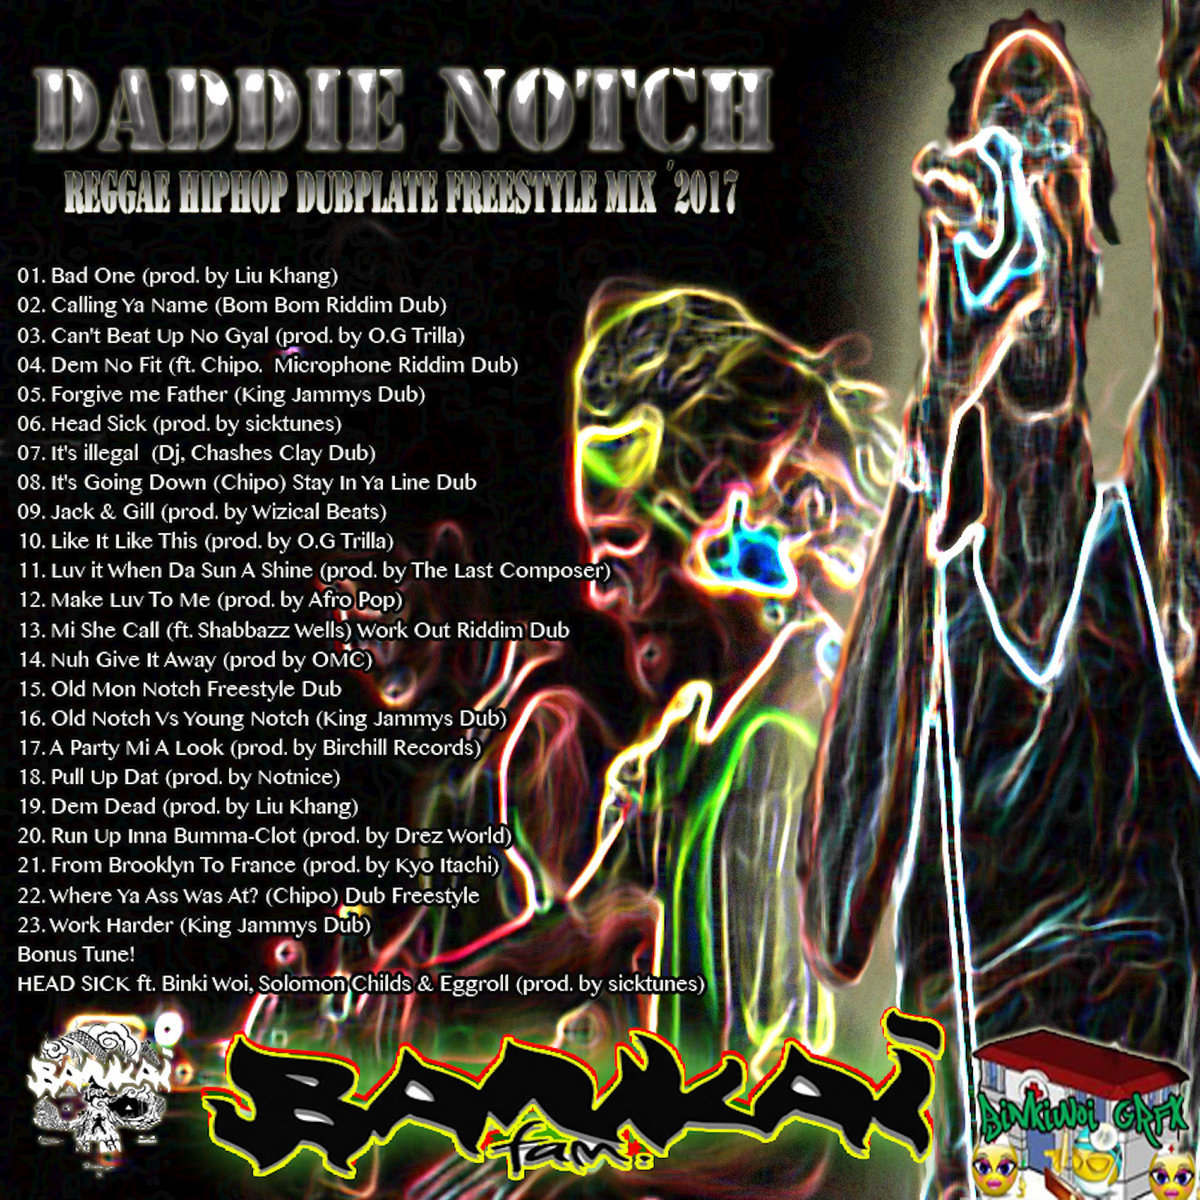 Reggae-HipHop Dubplate Freestyle MixTape 2017 by Daddie